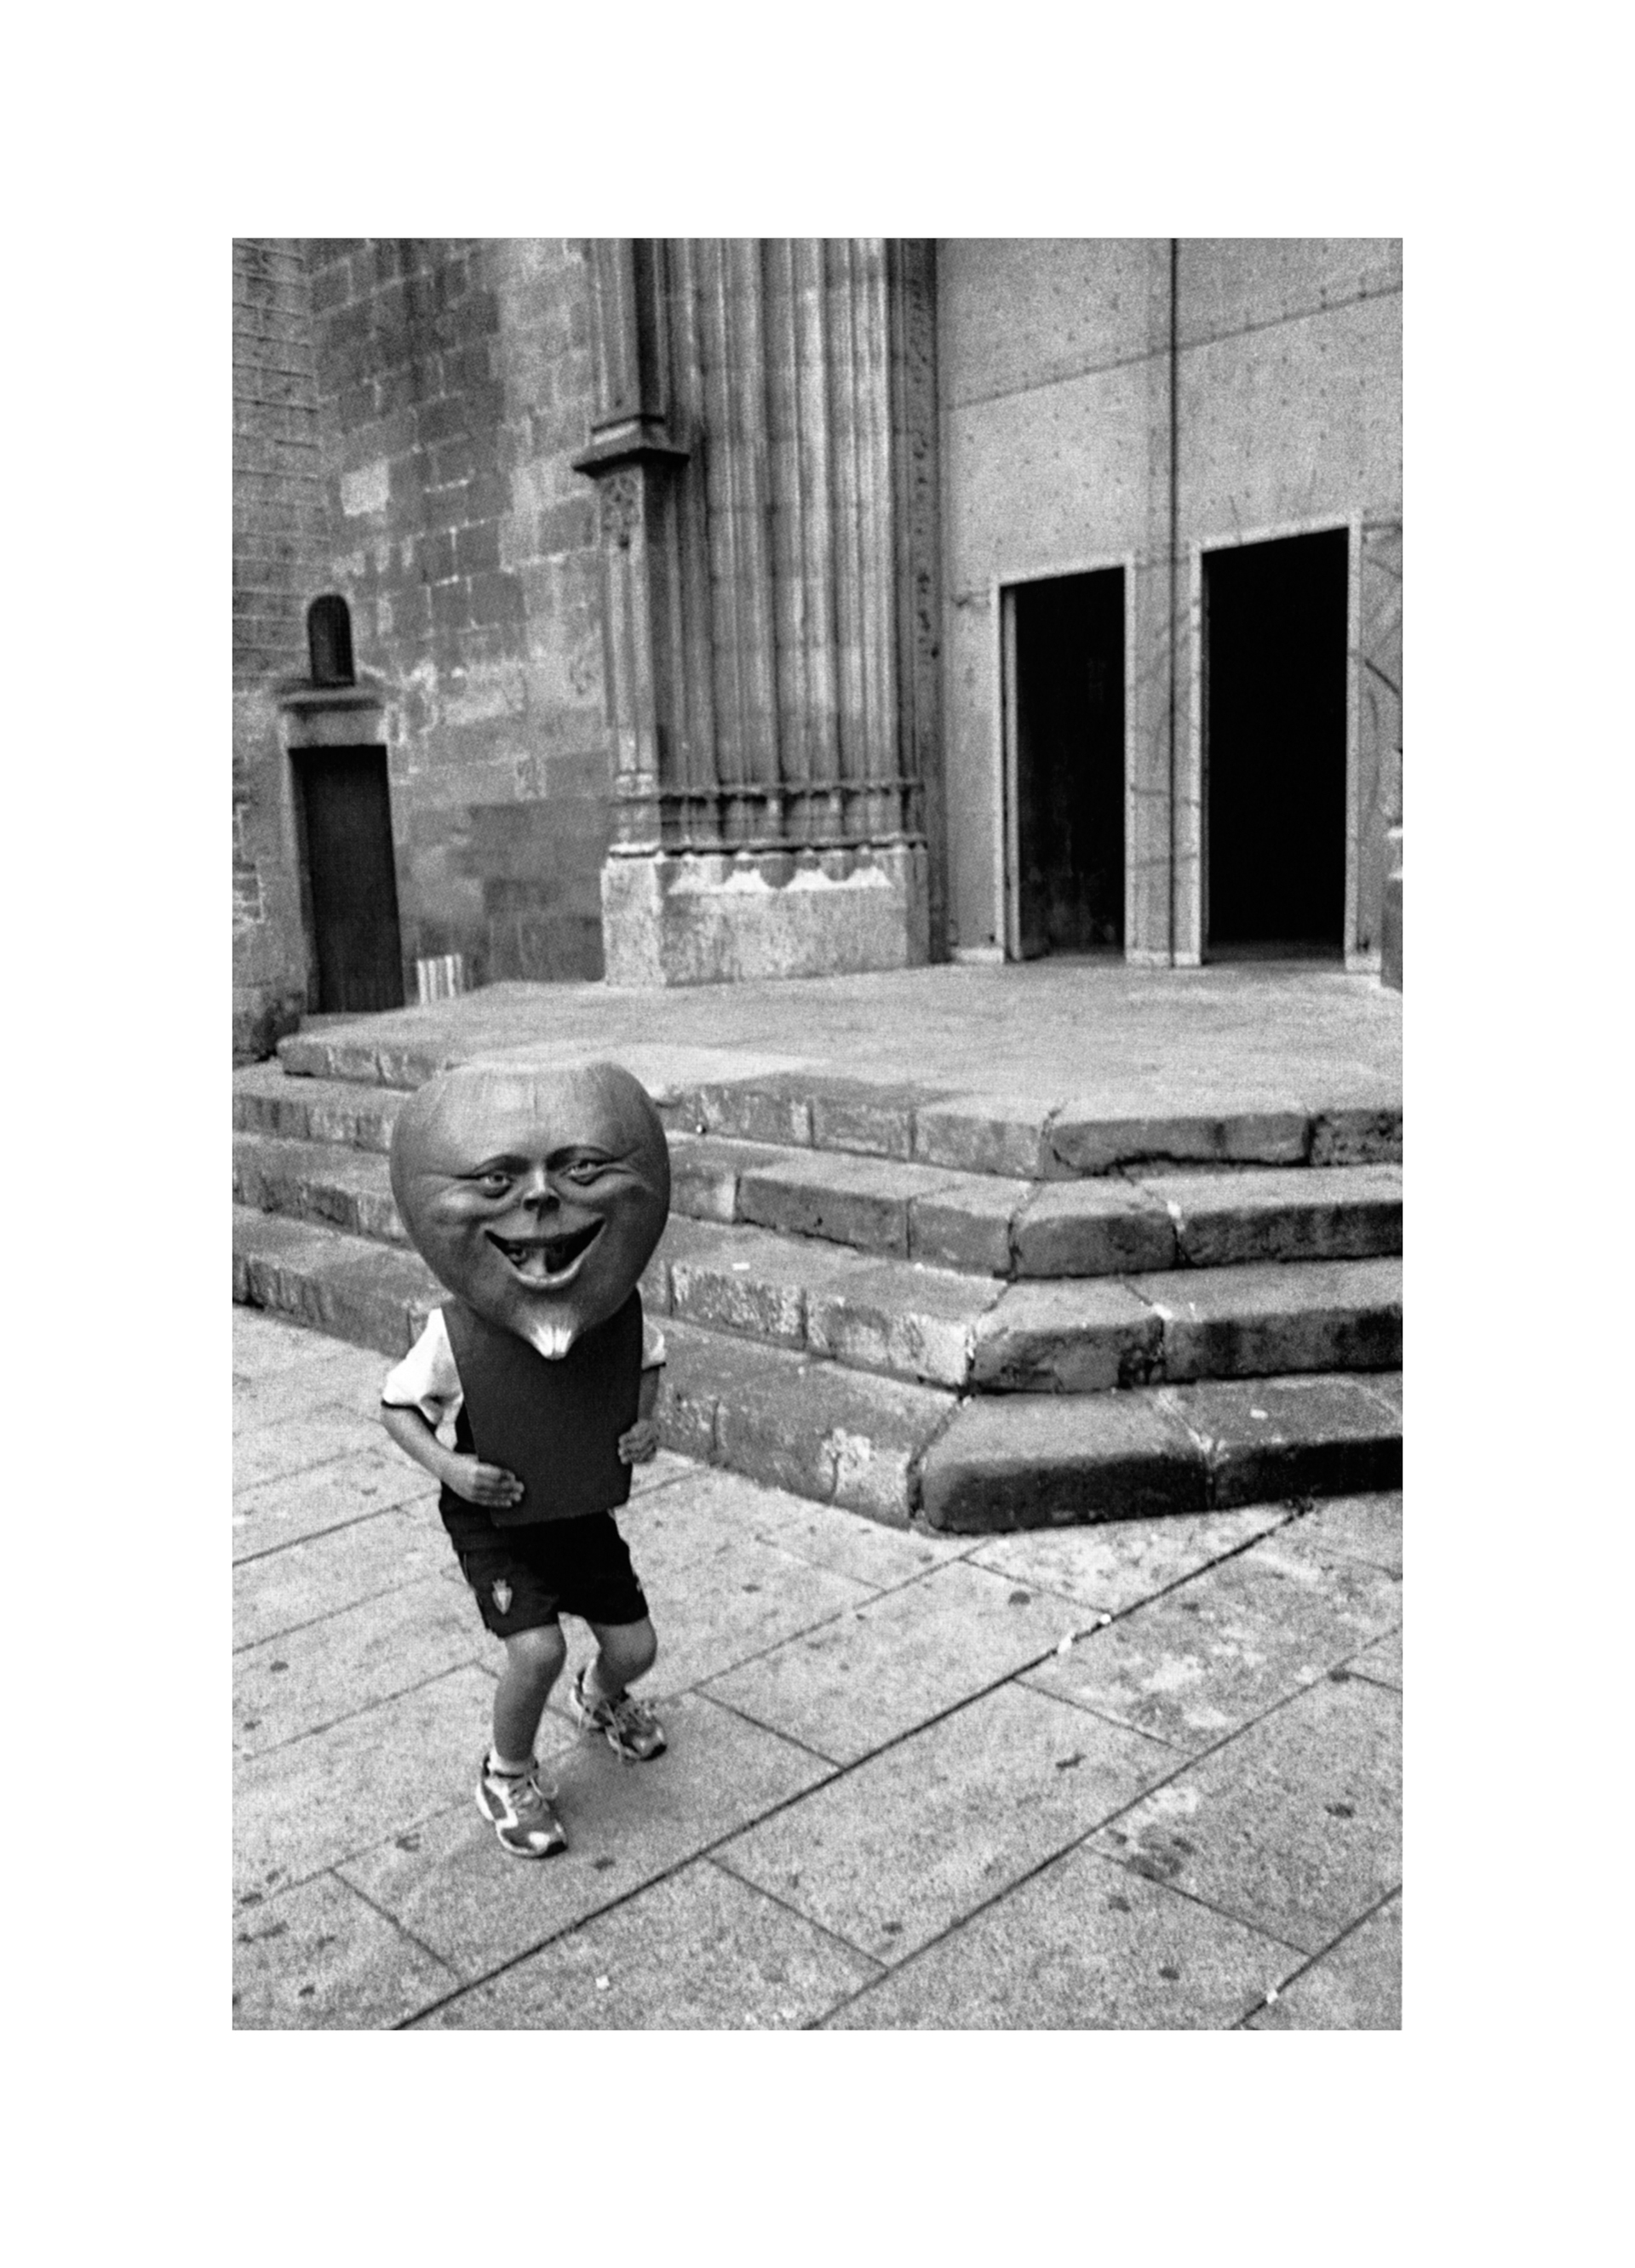 Image of Boy in Mask, Barcelona 2004 by David Peat